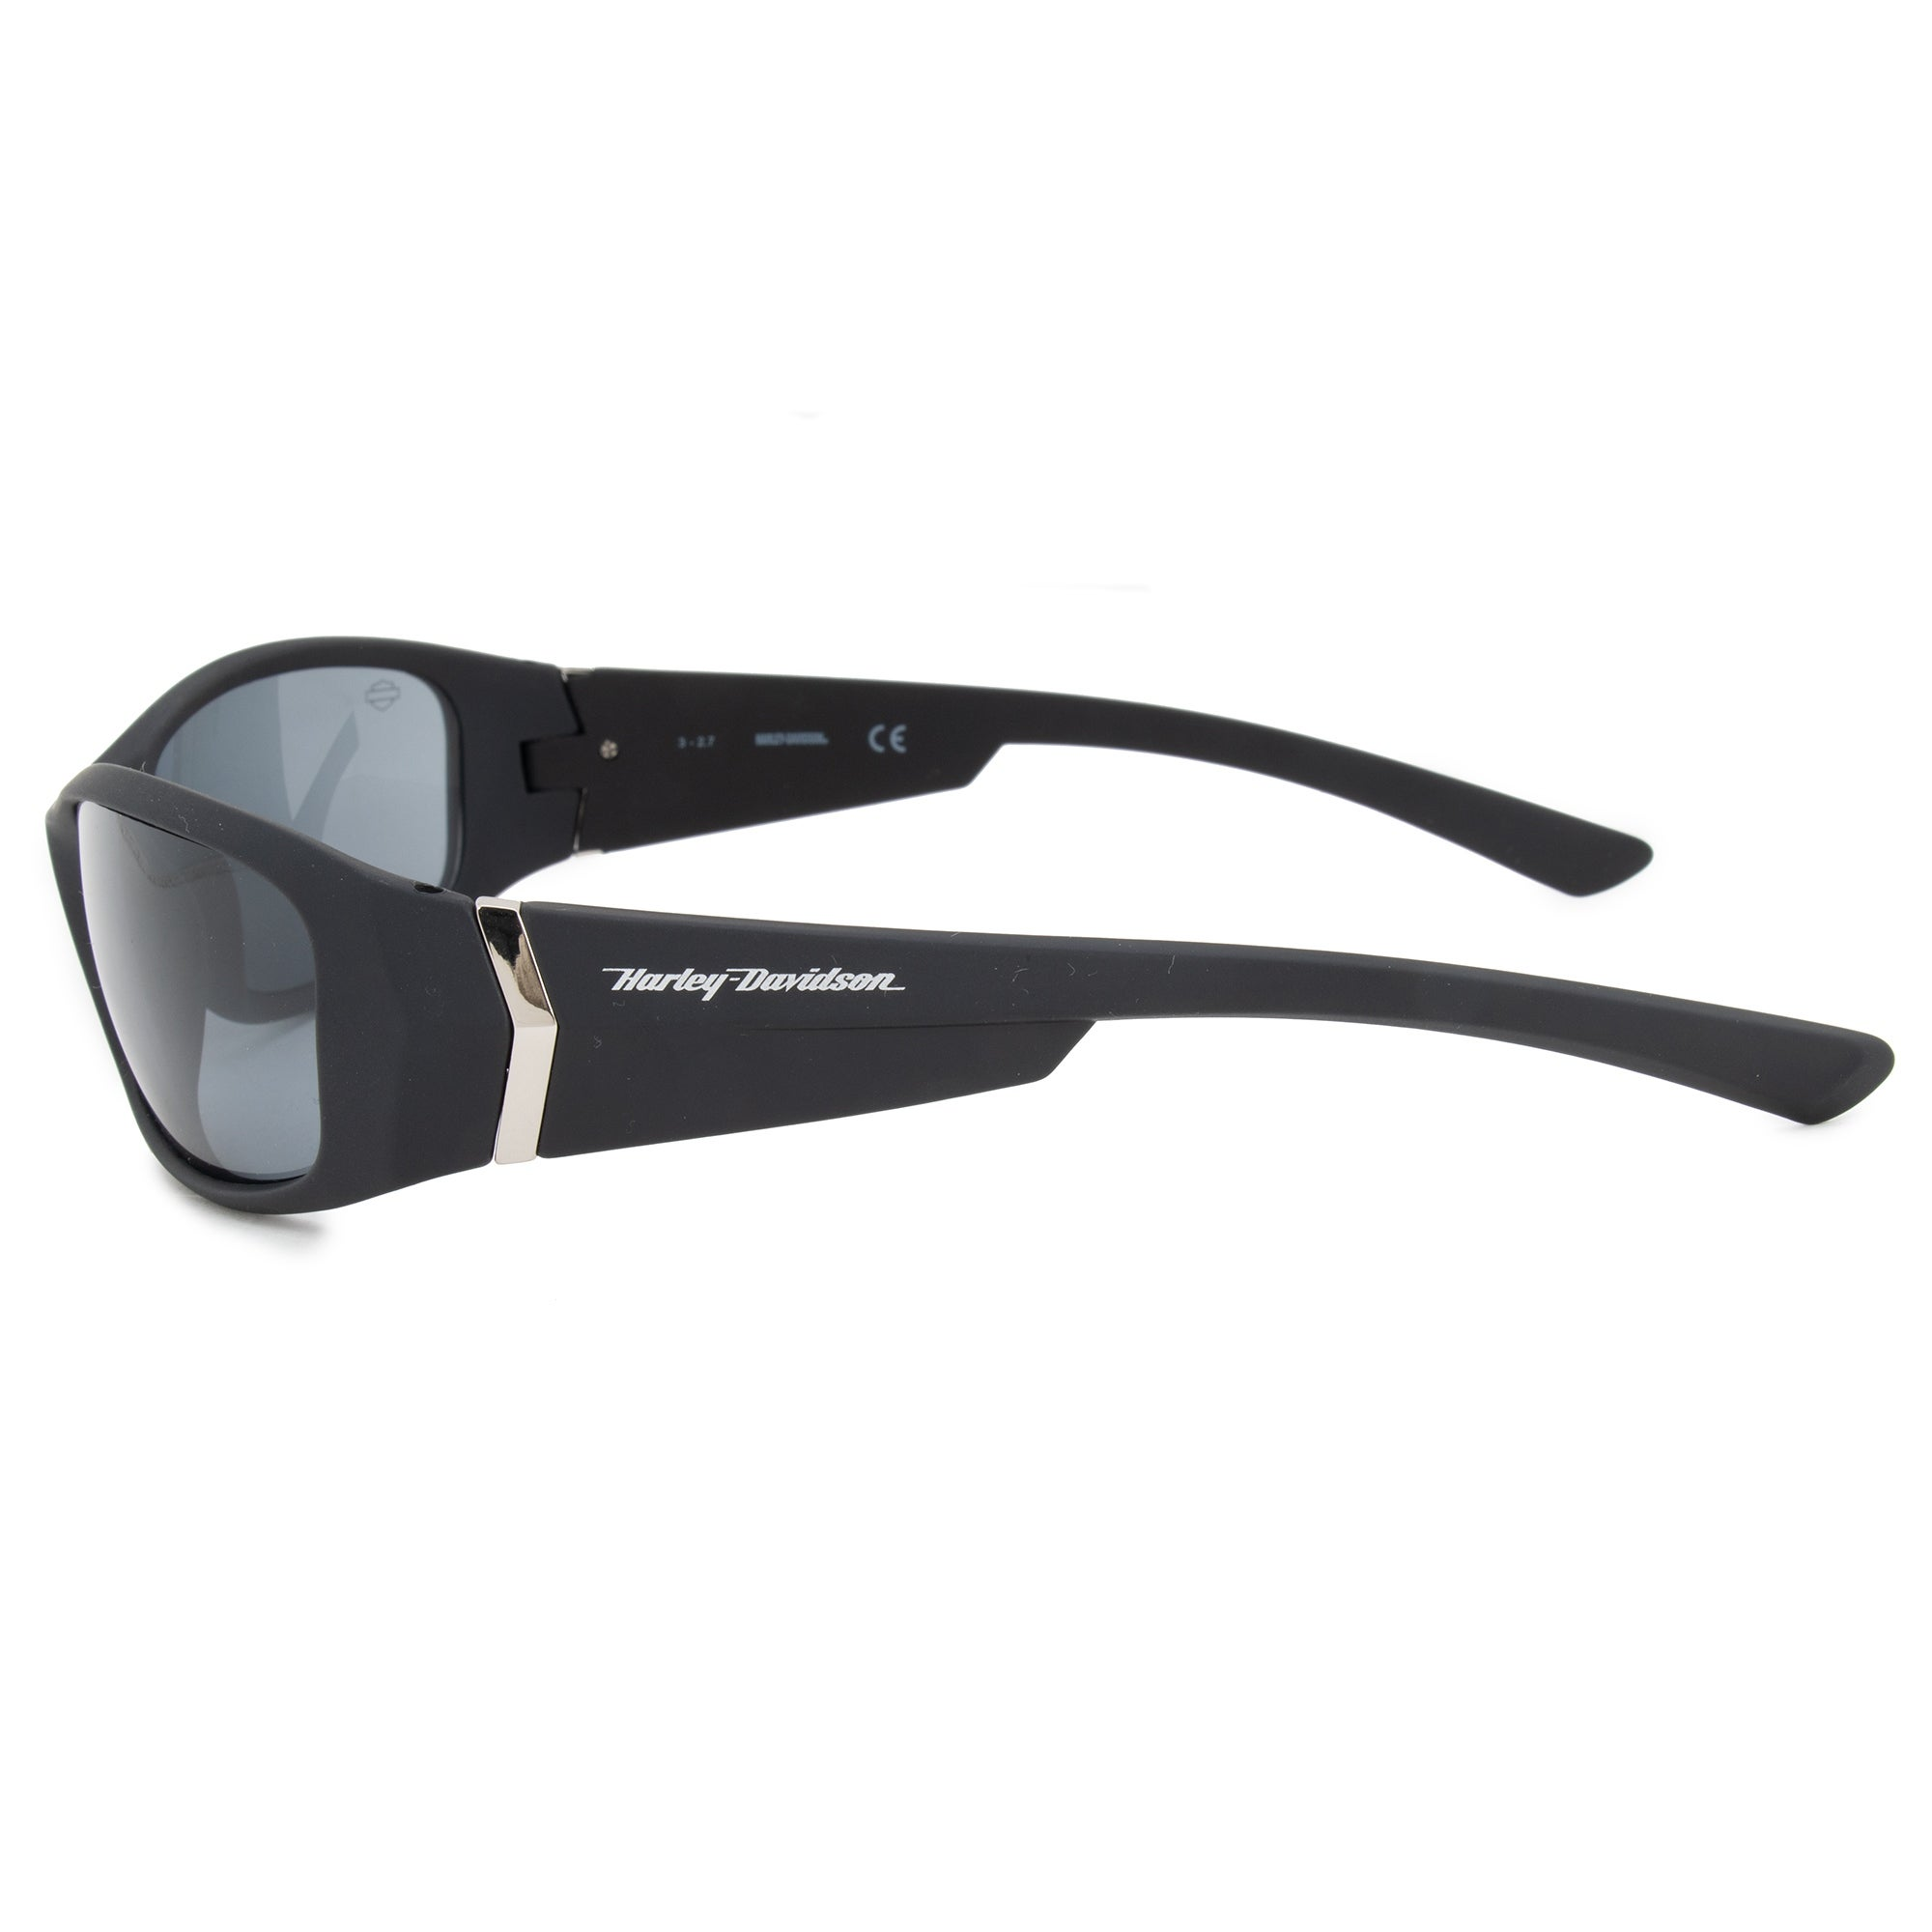 4f0e08133e4 Shop Harley Davidson Sports Sunglasses HDV0004 BLK 3 62 - Free Shipping On  Orders Over  45 - Overstock - 25895505